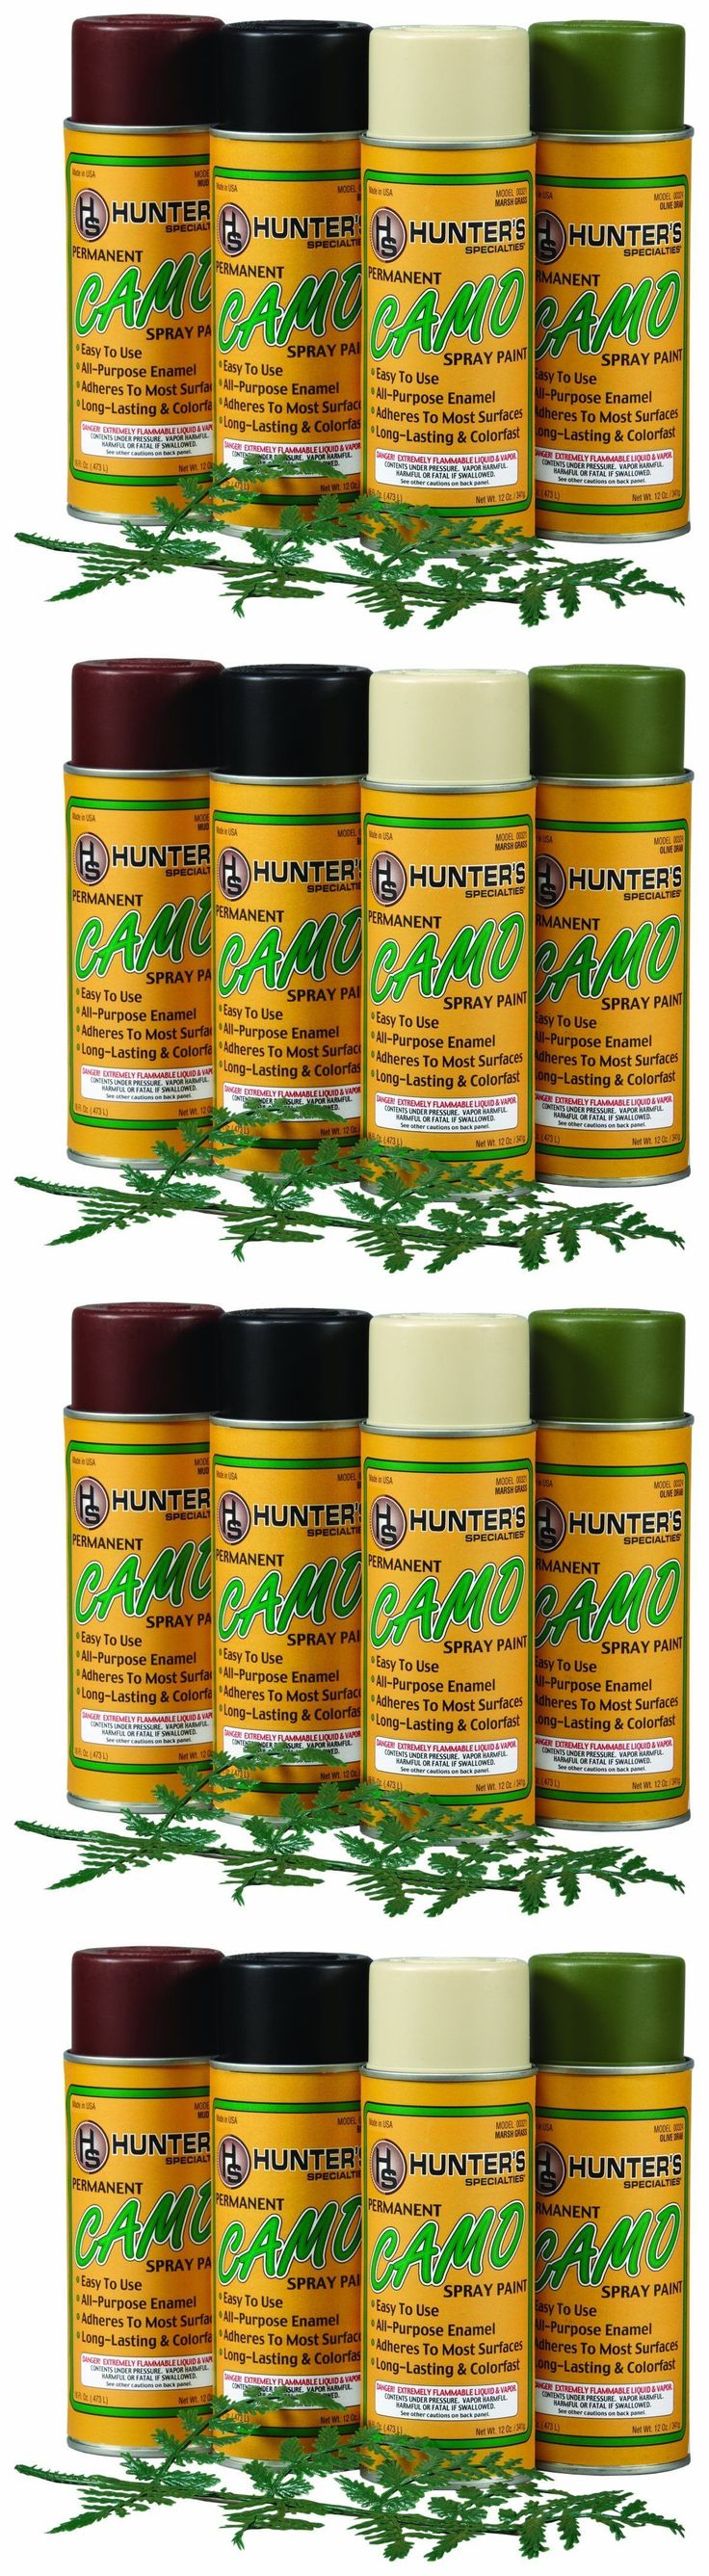 Camouflage Materials 177911: Permanent Camo Spray Paint Kit With Leaf Stencil Drab Tan,Brown,Black,Olive Hunt BUY IT NOW ONLY: $36.49